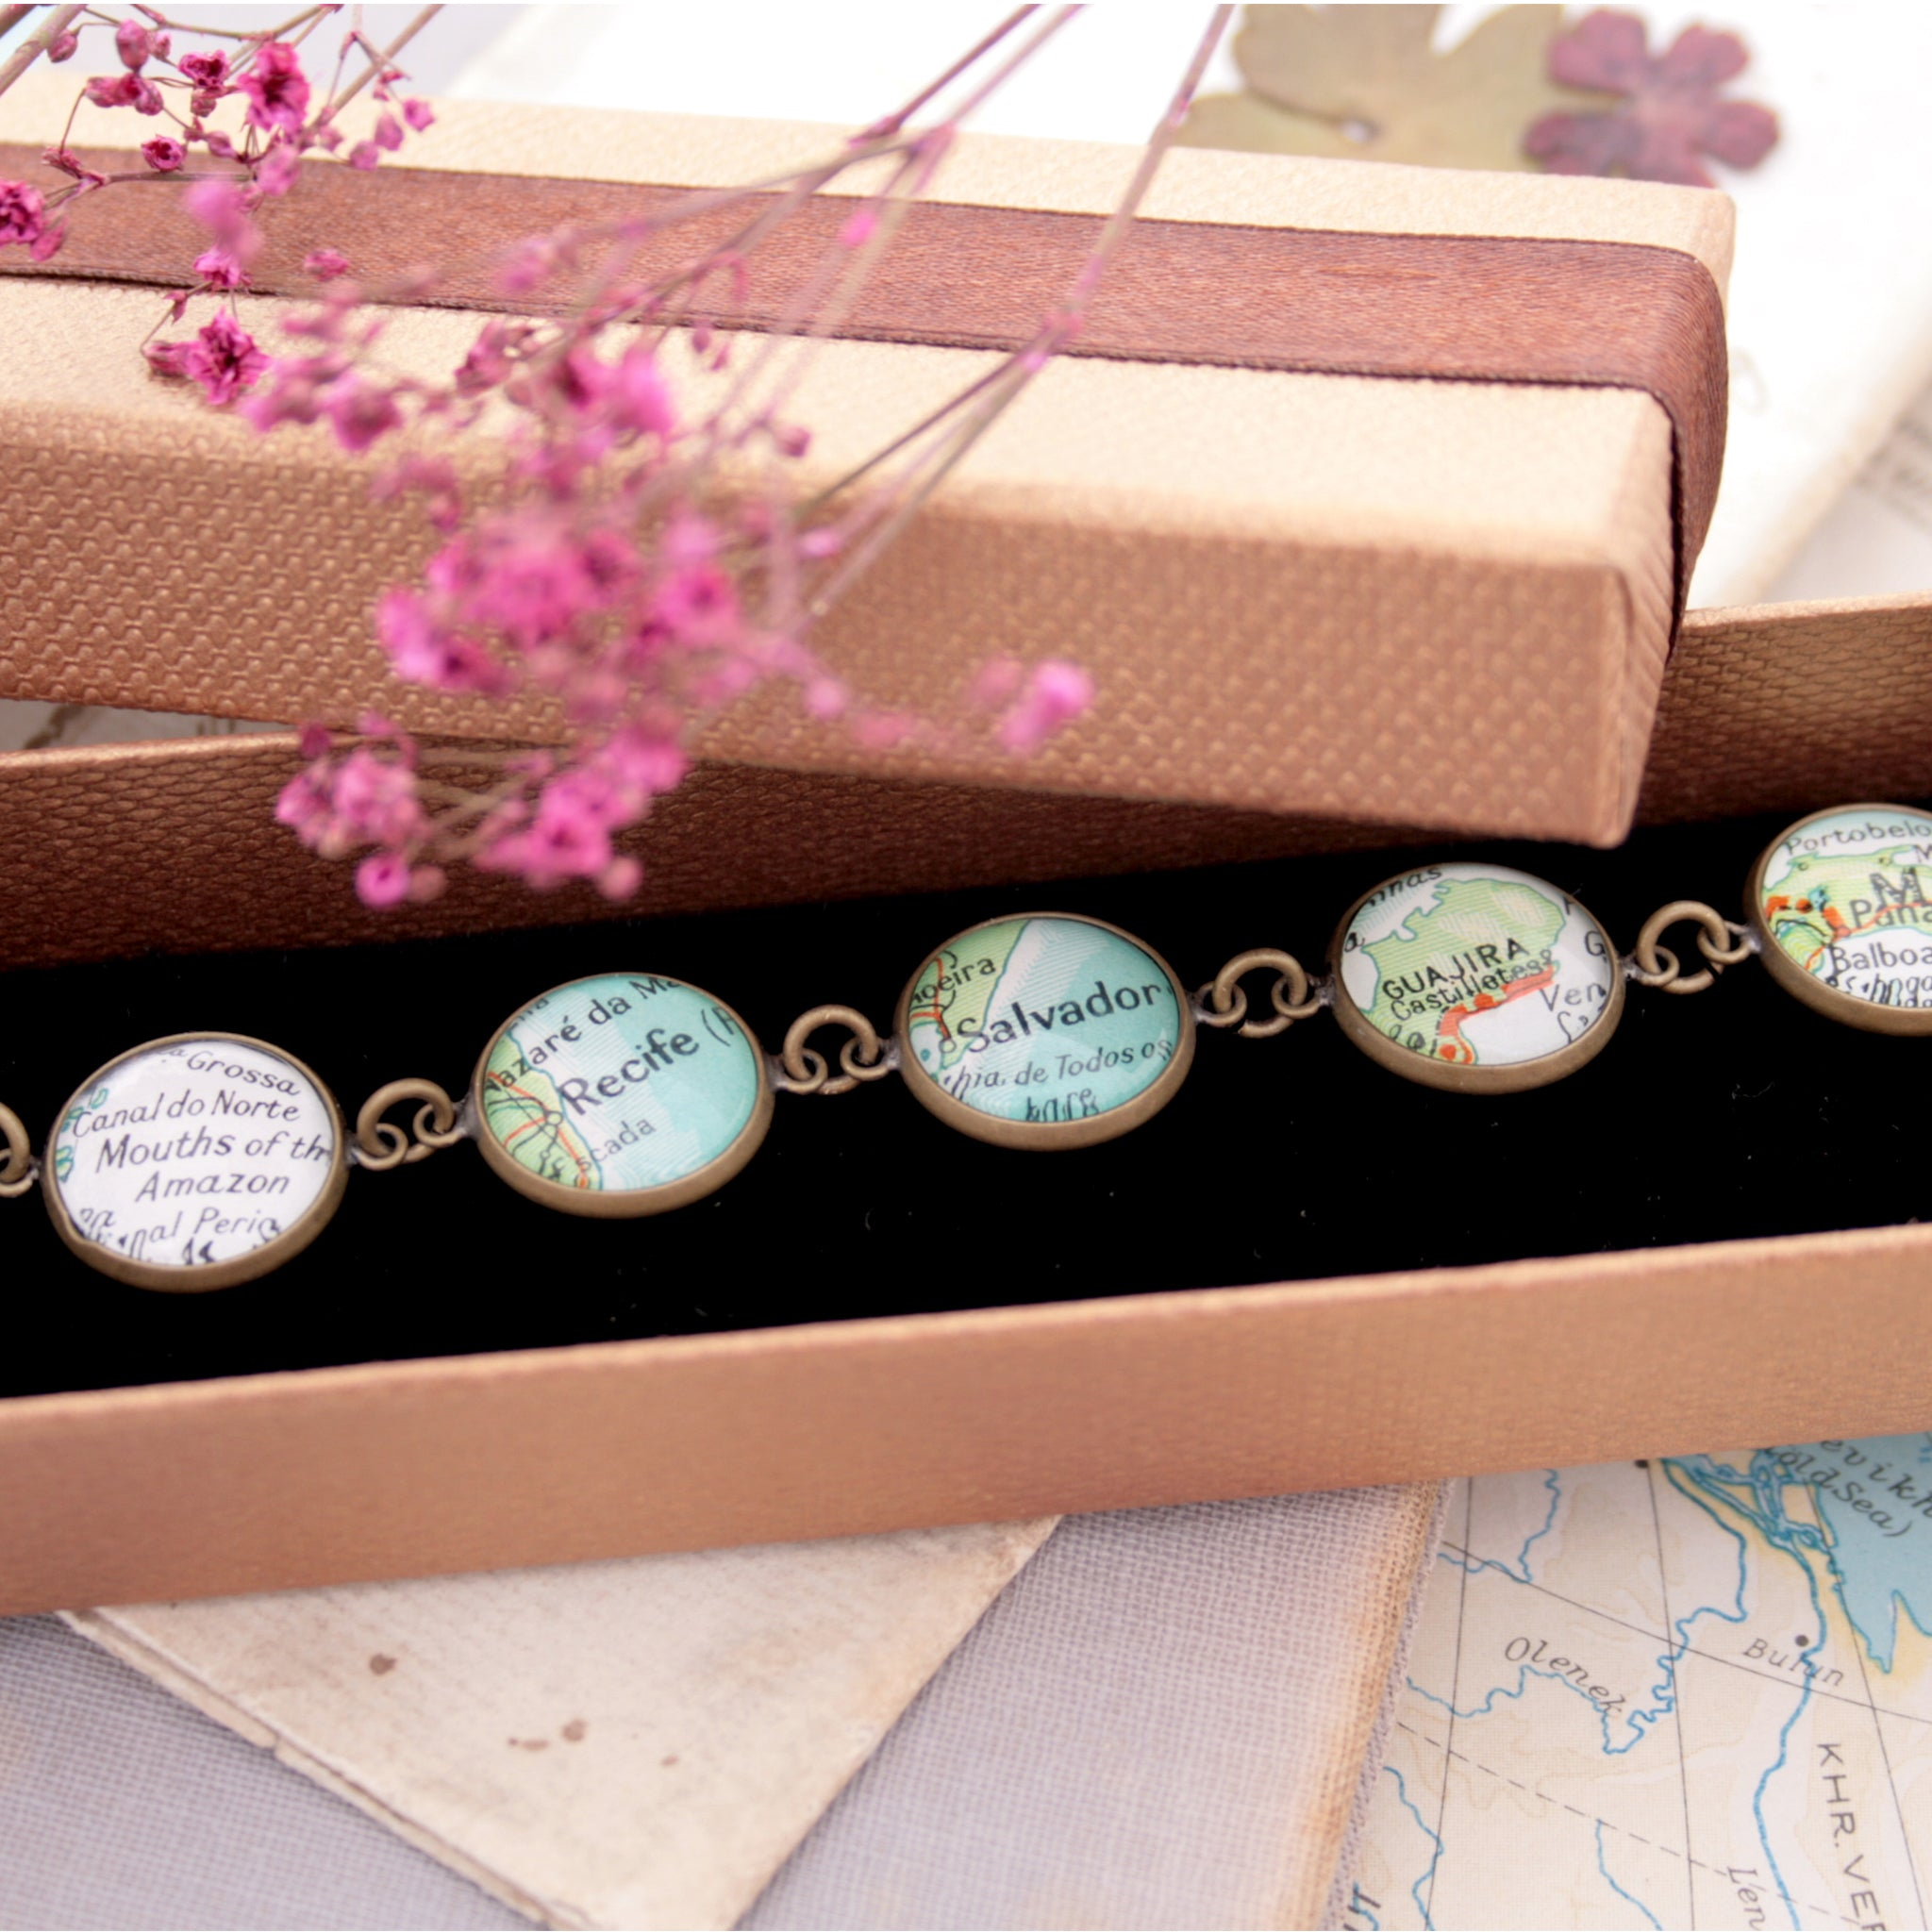 Antique bronze beaded bracelet featuring different map locations in a brown box